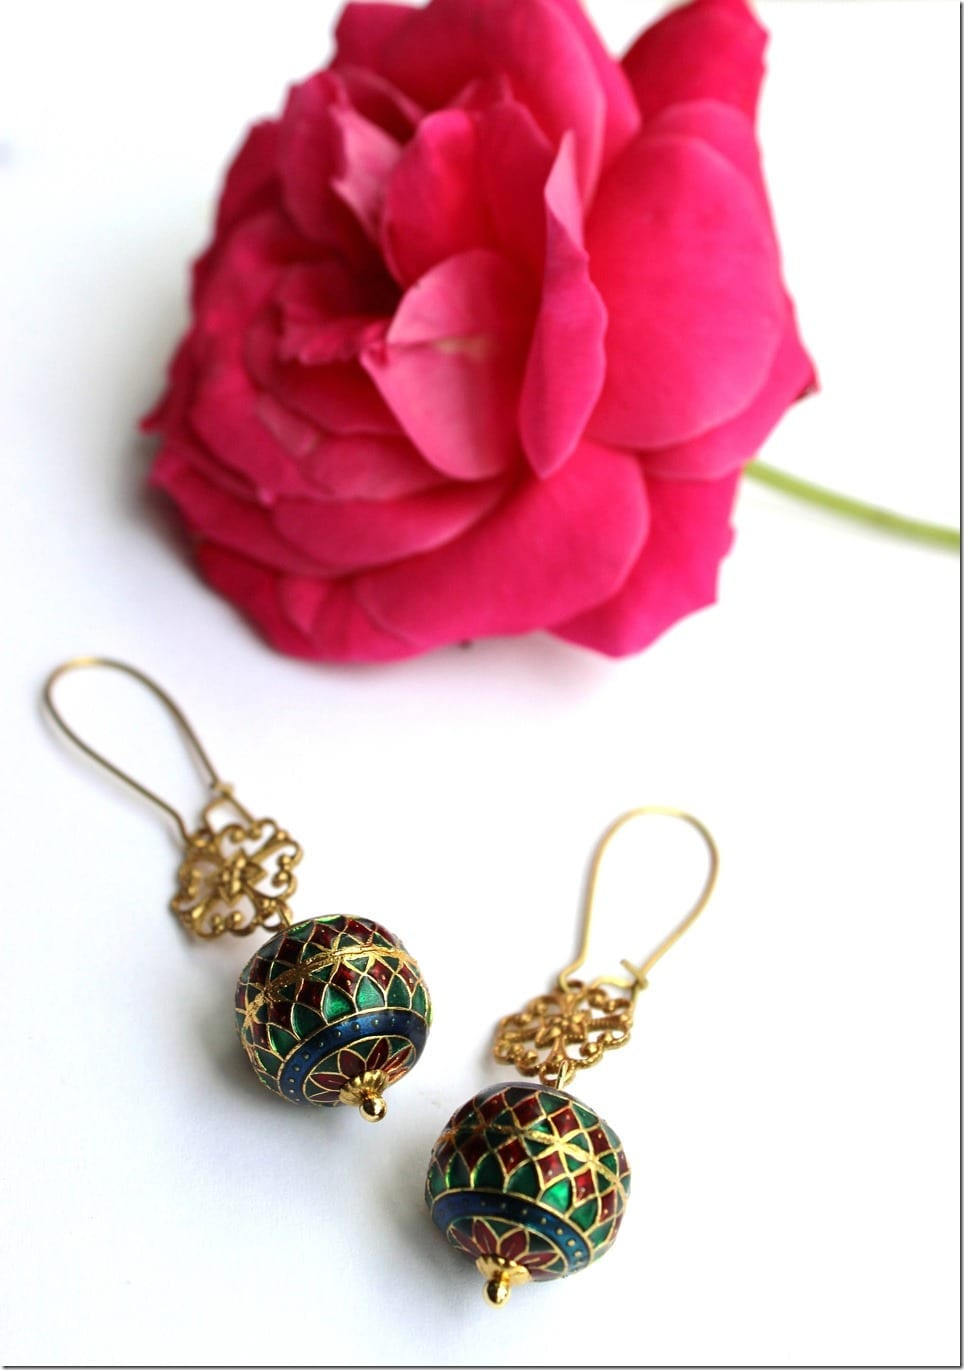 filigree-charm-enameled-beads-earrings